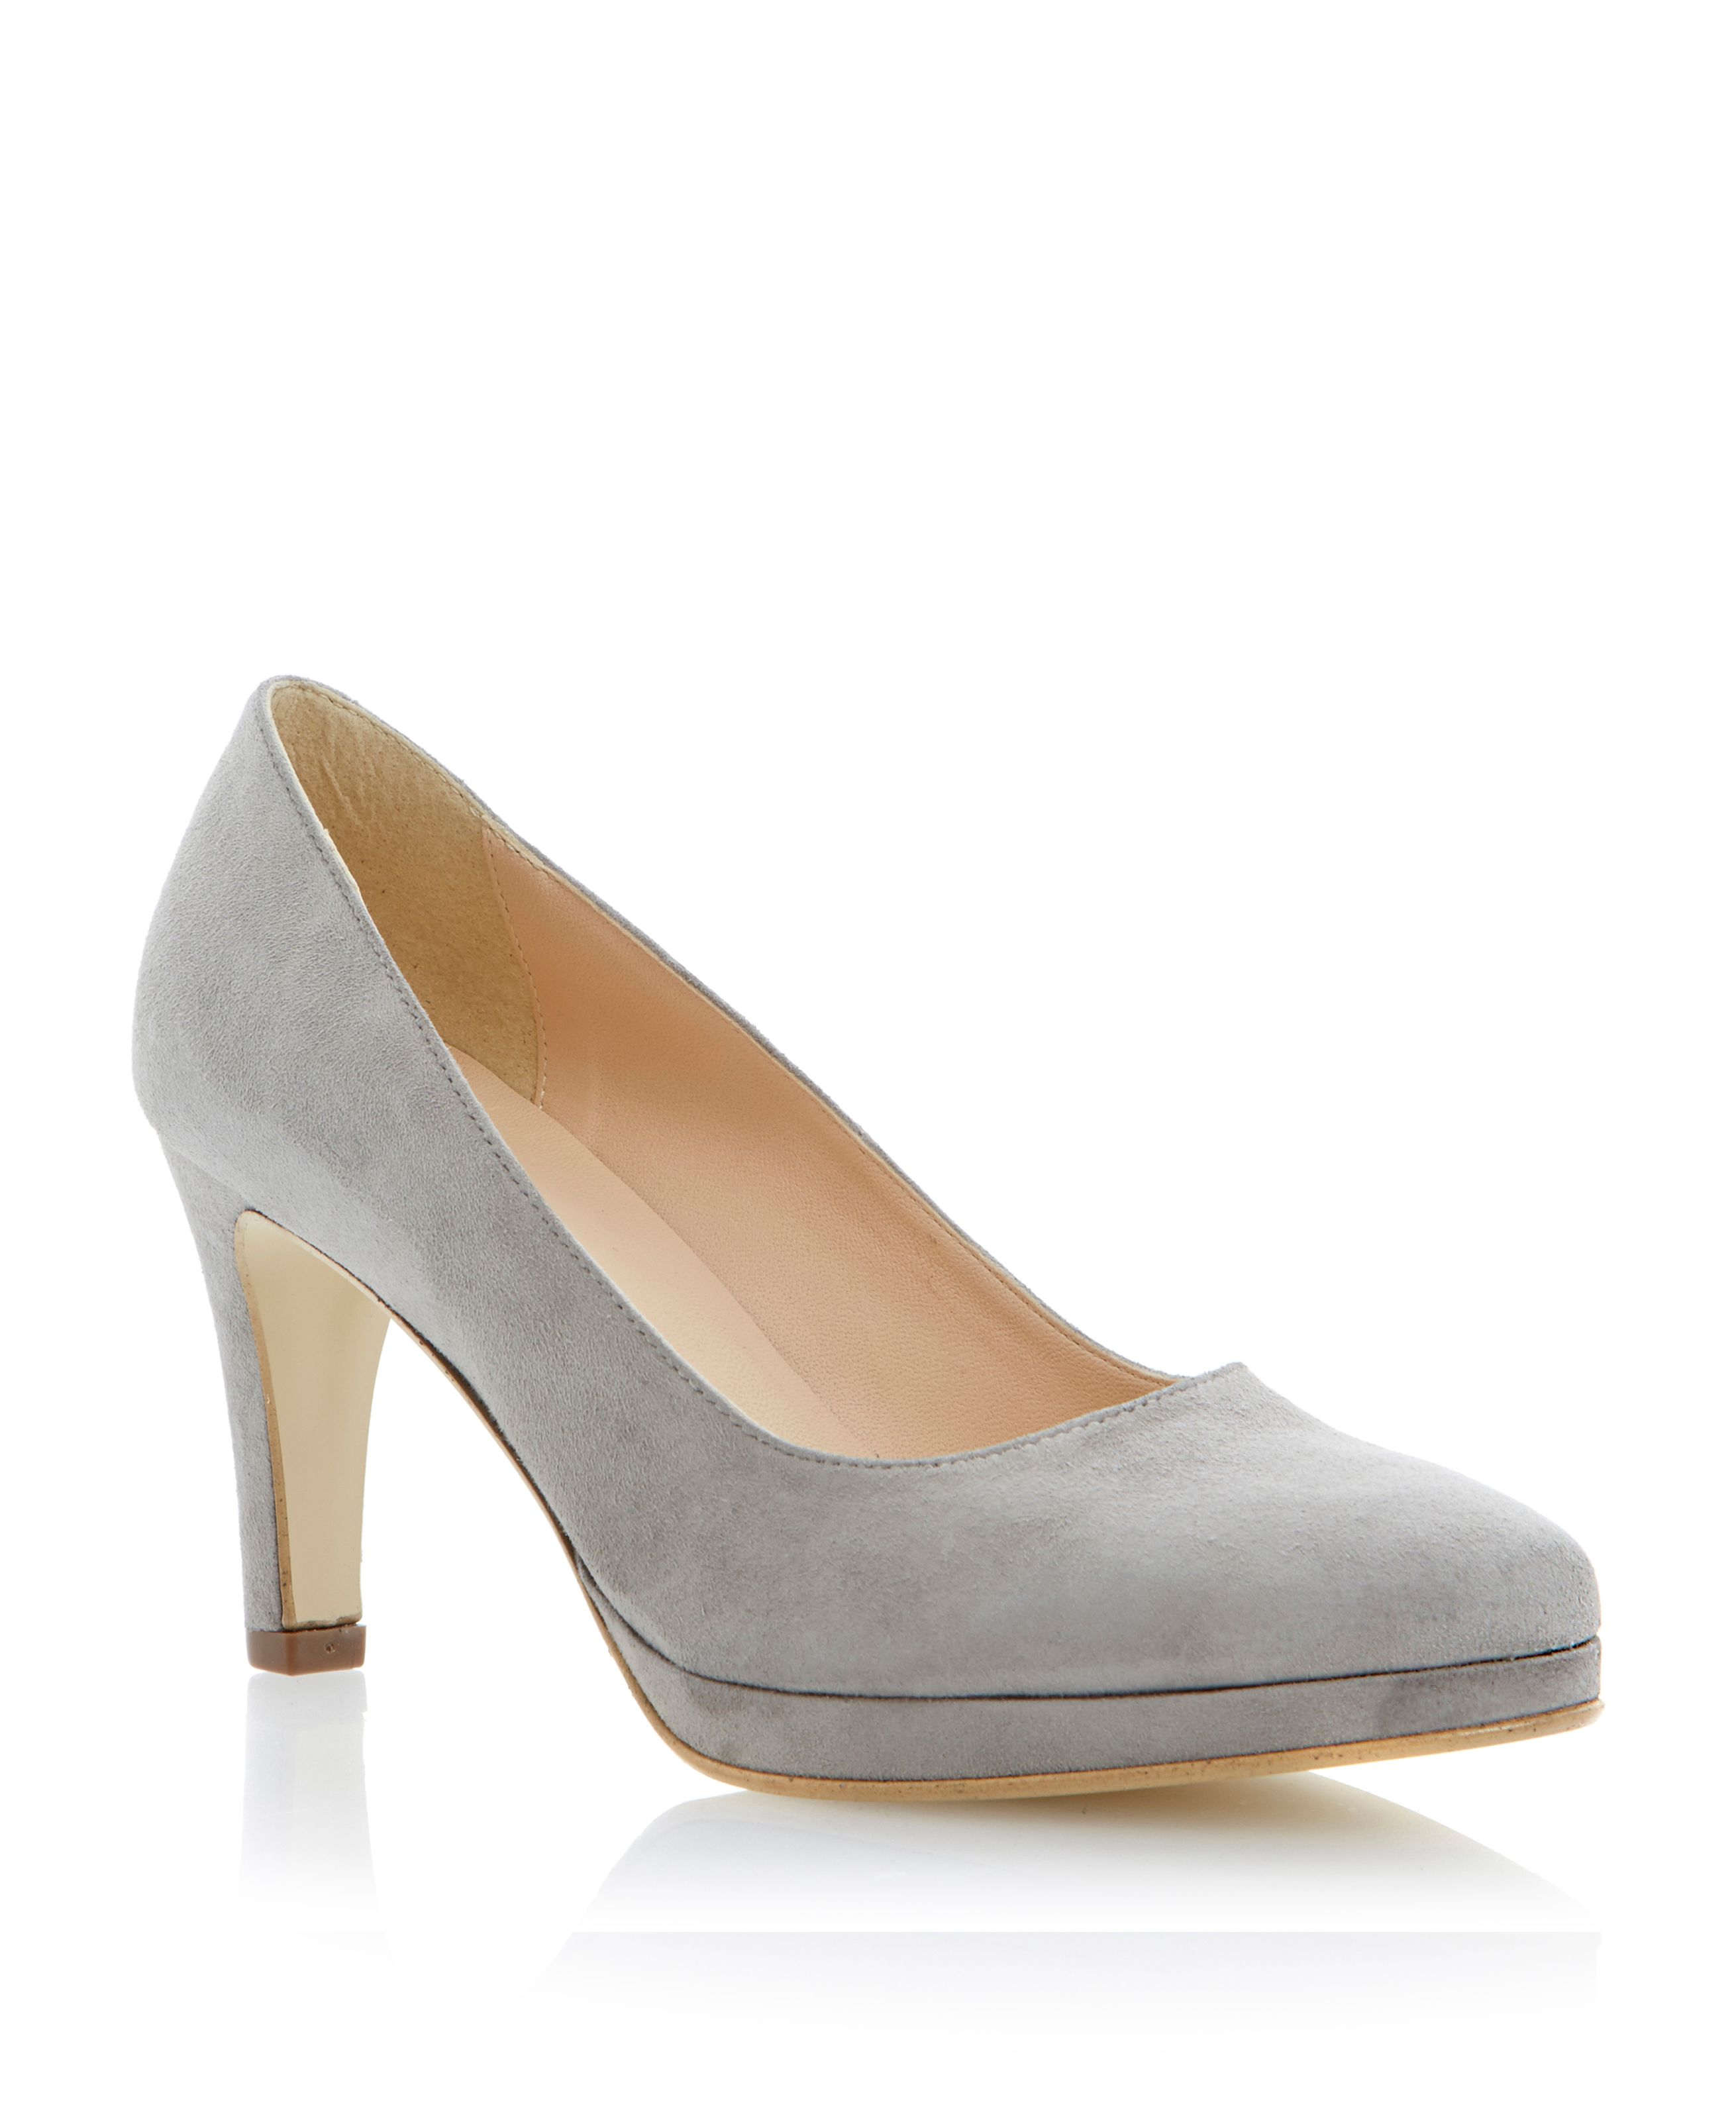 Adilko suede pointed toe stiletto court shoes